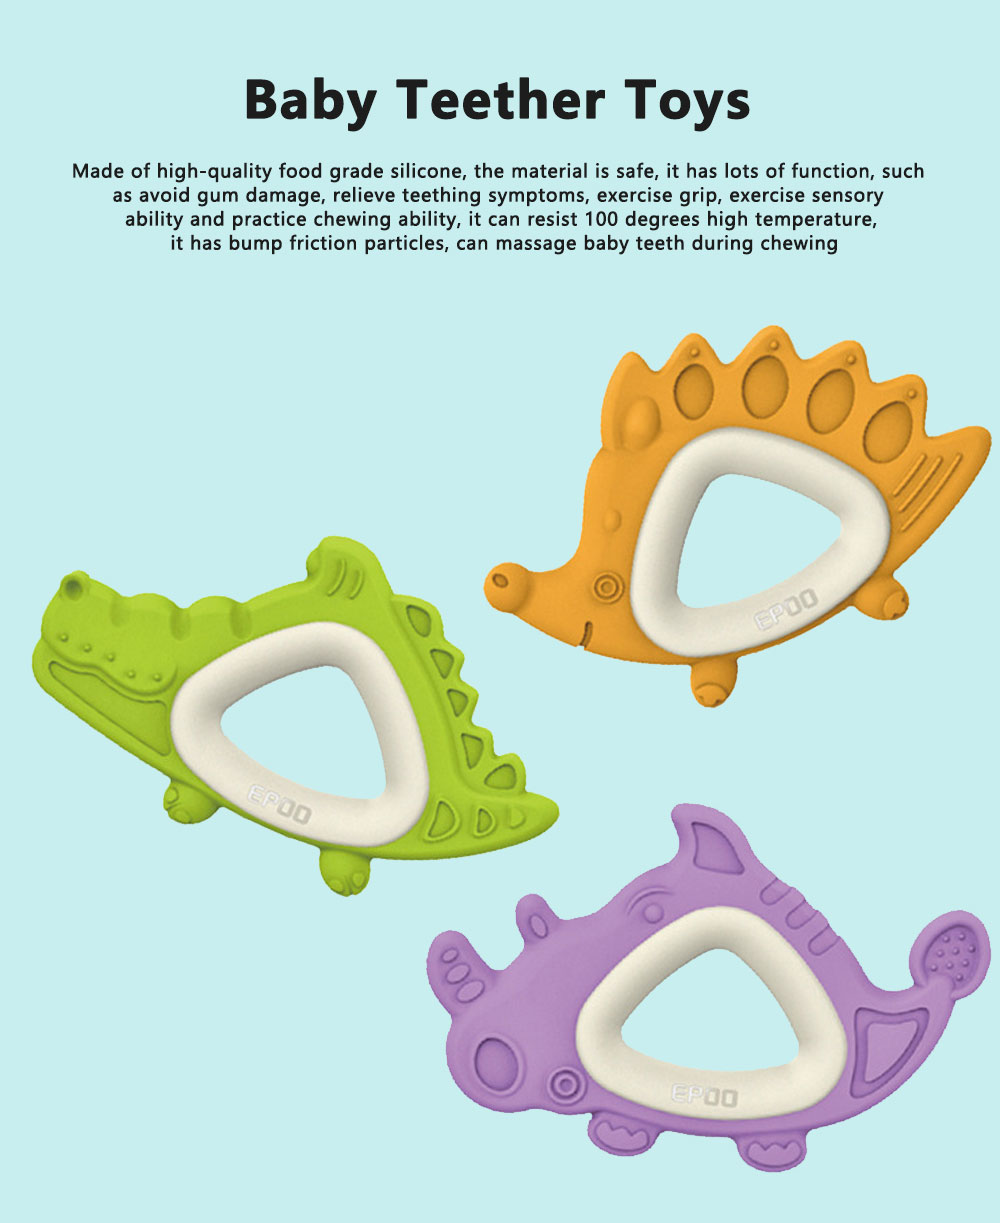 Hot Sell New Design Baby Teether Toys Soft Molars Solid Safe Food Grade Organic High Quality Silicone Teething 0